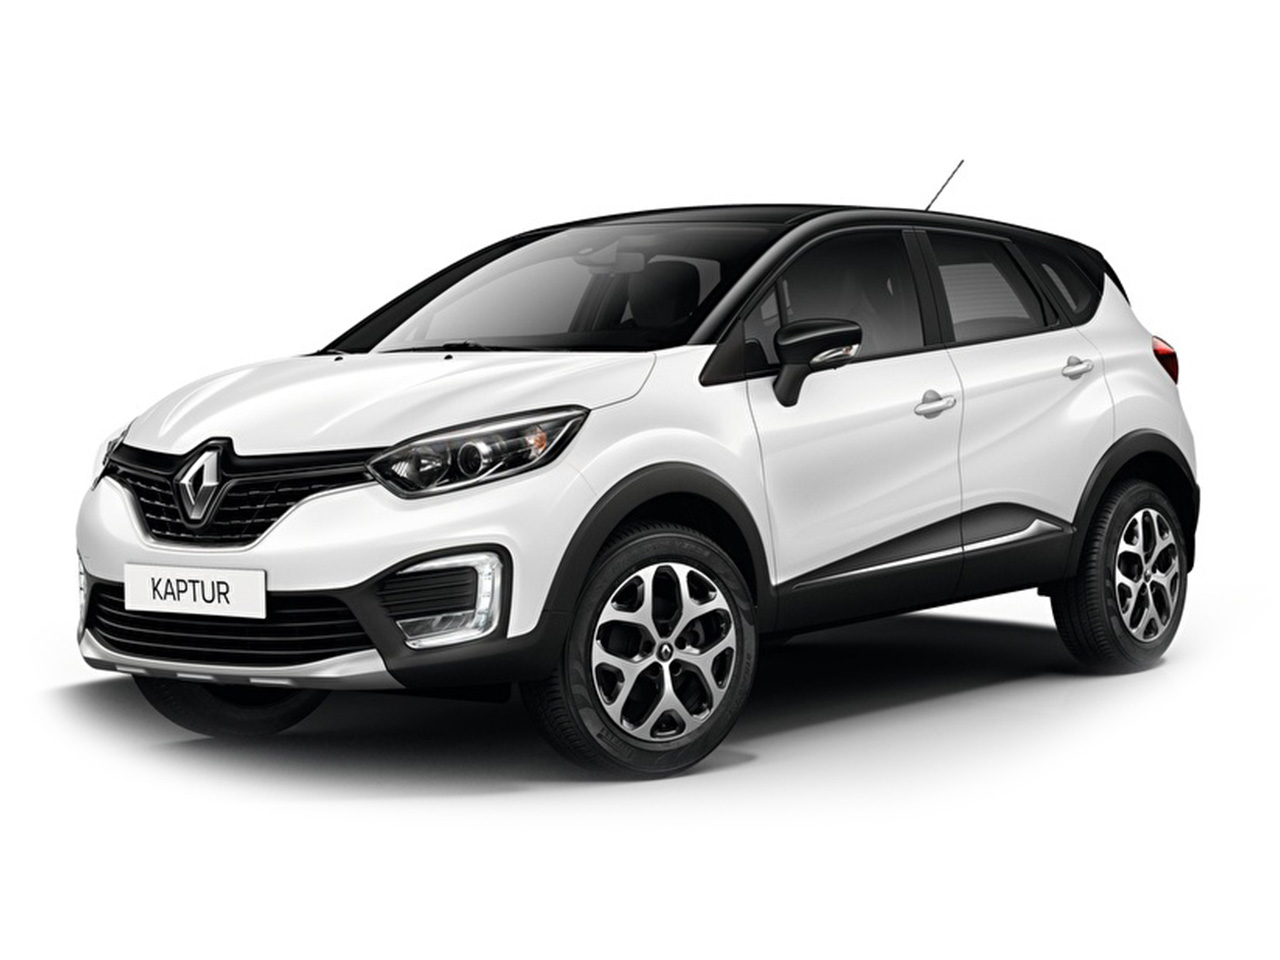 2018 renault captur prices in uae gulf specs reviews for dubai abu dhabi and sharjah. Black Bedroom Furniture Sets. Home Design Ideas